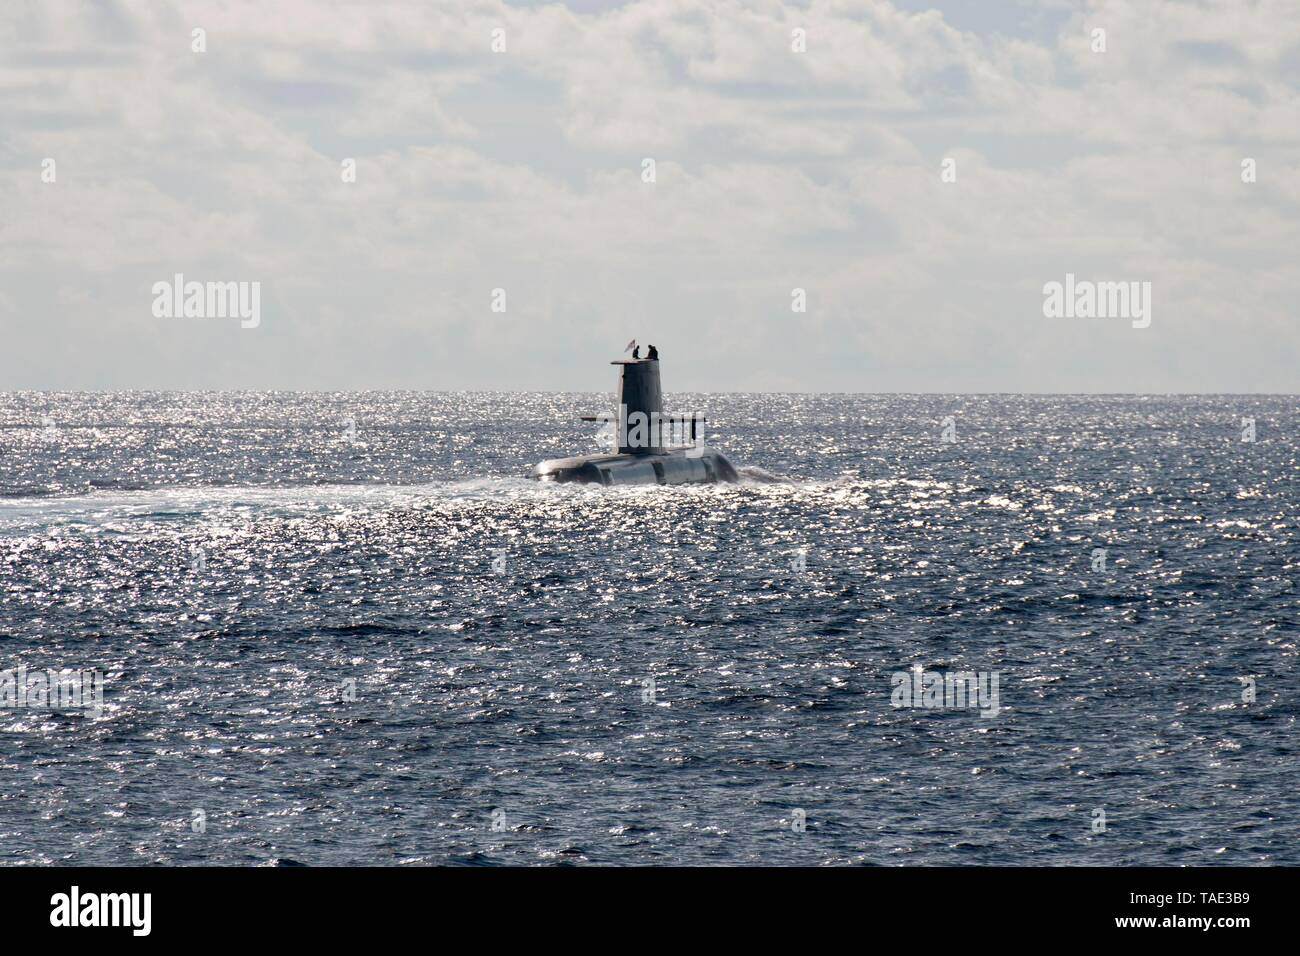 190521-N-VA840-0074 INDIAN OCEAN (May 21, 2019) The Royal Australian Navy's HMAS Collins (SSG 73) rises to the surface during a multi-nation group sail in the Indian Ocean. The Arleigh Burke-class guided-missile destroyer USS William P. Lawrence (DDG 110), and the Henry J. Kaiser-class fleet replenishment oiler USNS Pecos (T-AO 197) sailed in formation, alongside ships and aircraft from the French, Japanese, and Australian navies. William P. Lawrence is deployed to the U.S. 7th Fleet area of operations in support of security and stability in the Indo-Pacific region. (U.S. Navy photo by Mass Co - Stock Image